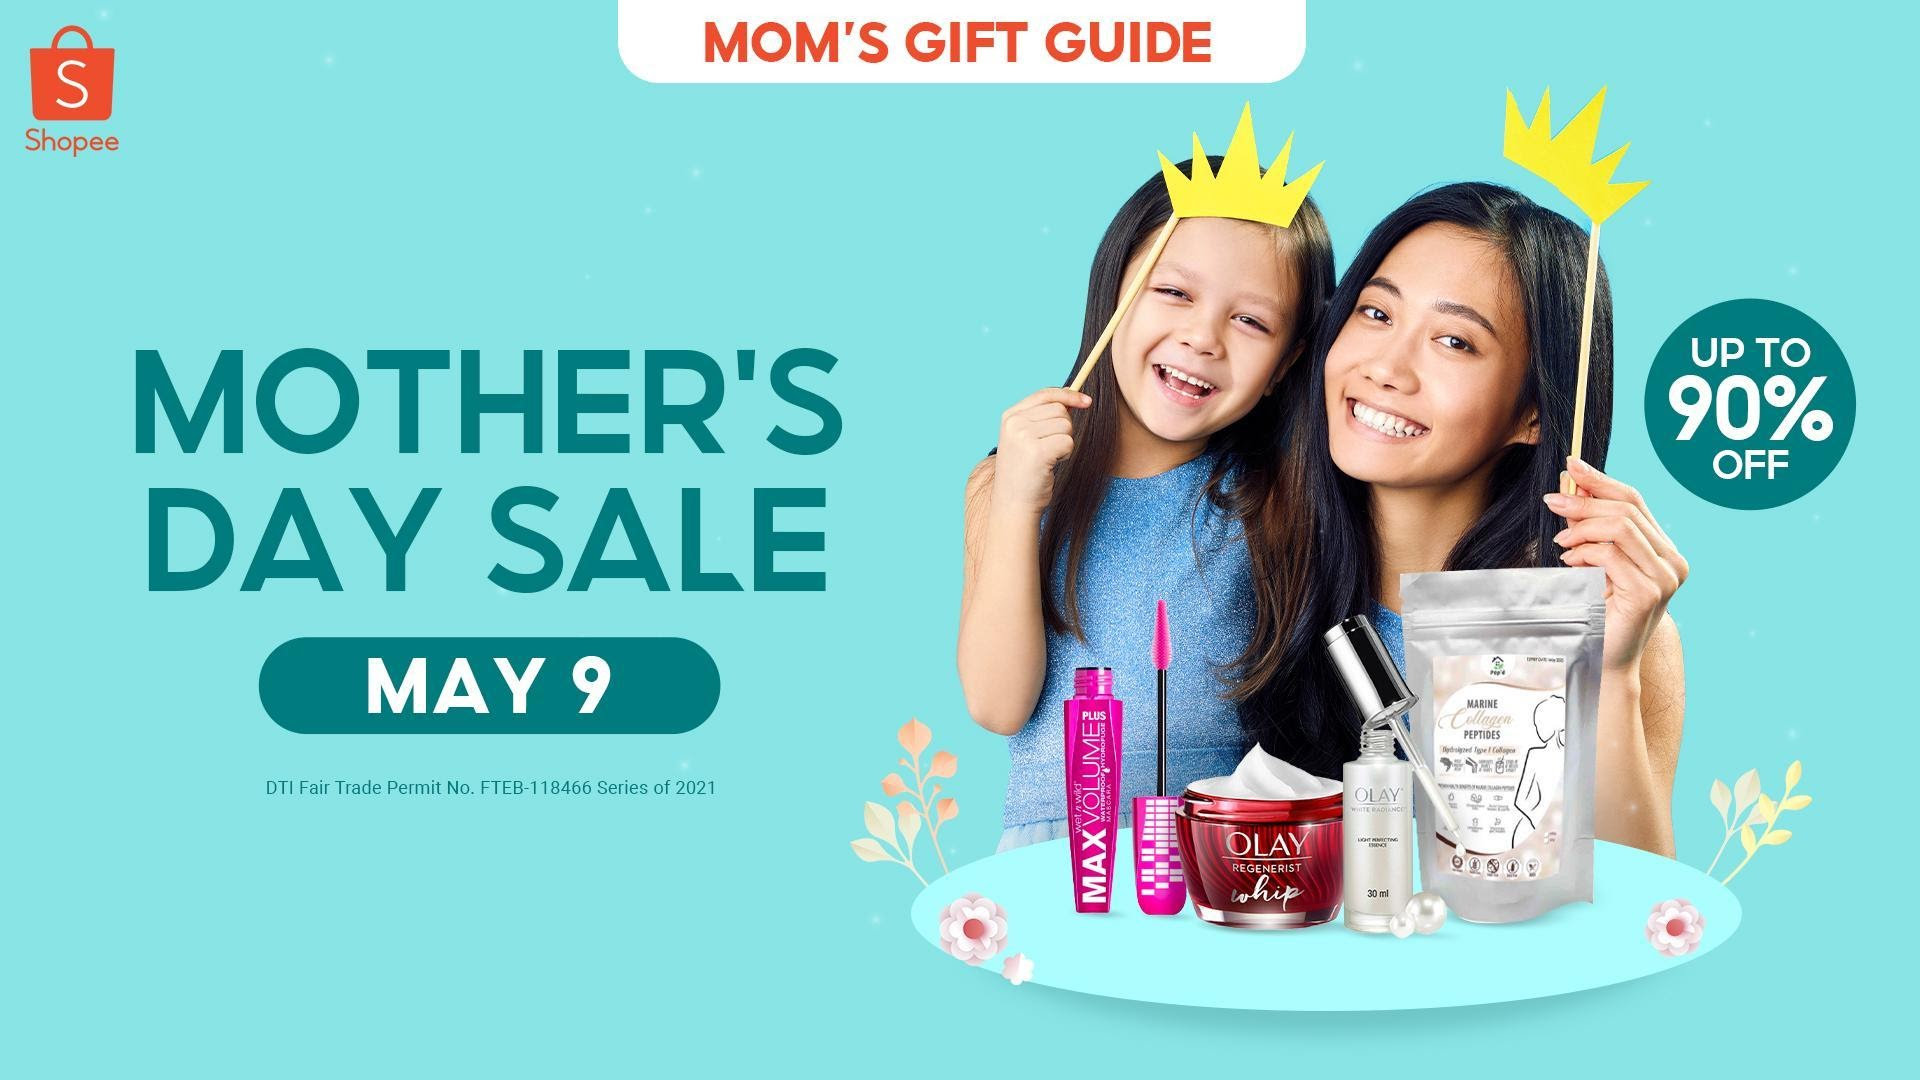 Pamper mom like the queen she is with makeup, skincare, and other goodies at Shopee's Mother's Day Sale